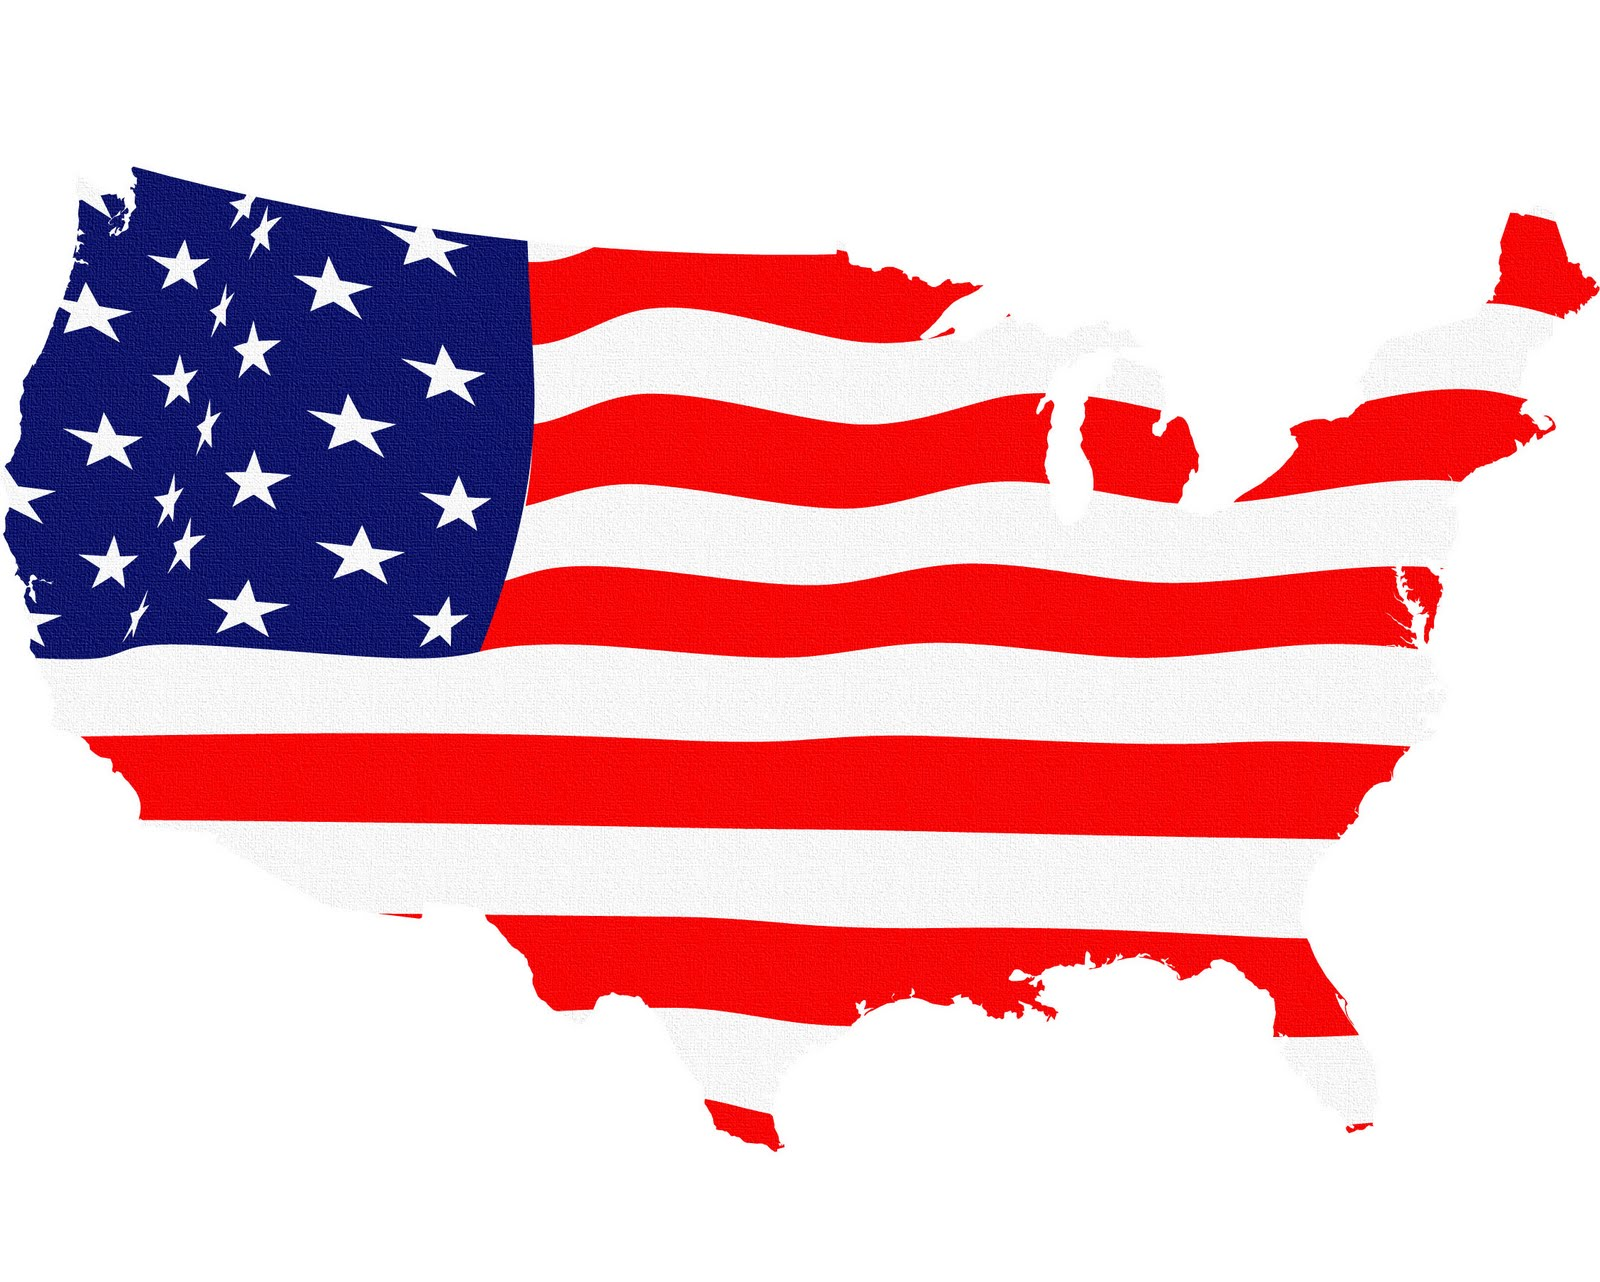 July 4th Free Clip Art - ClipArt Best